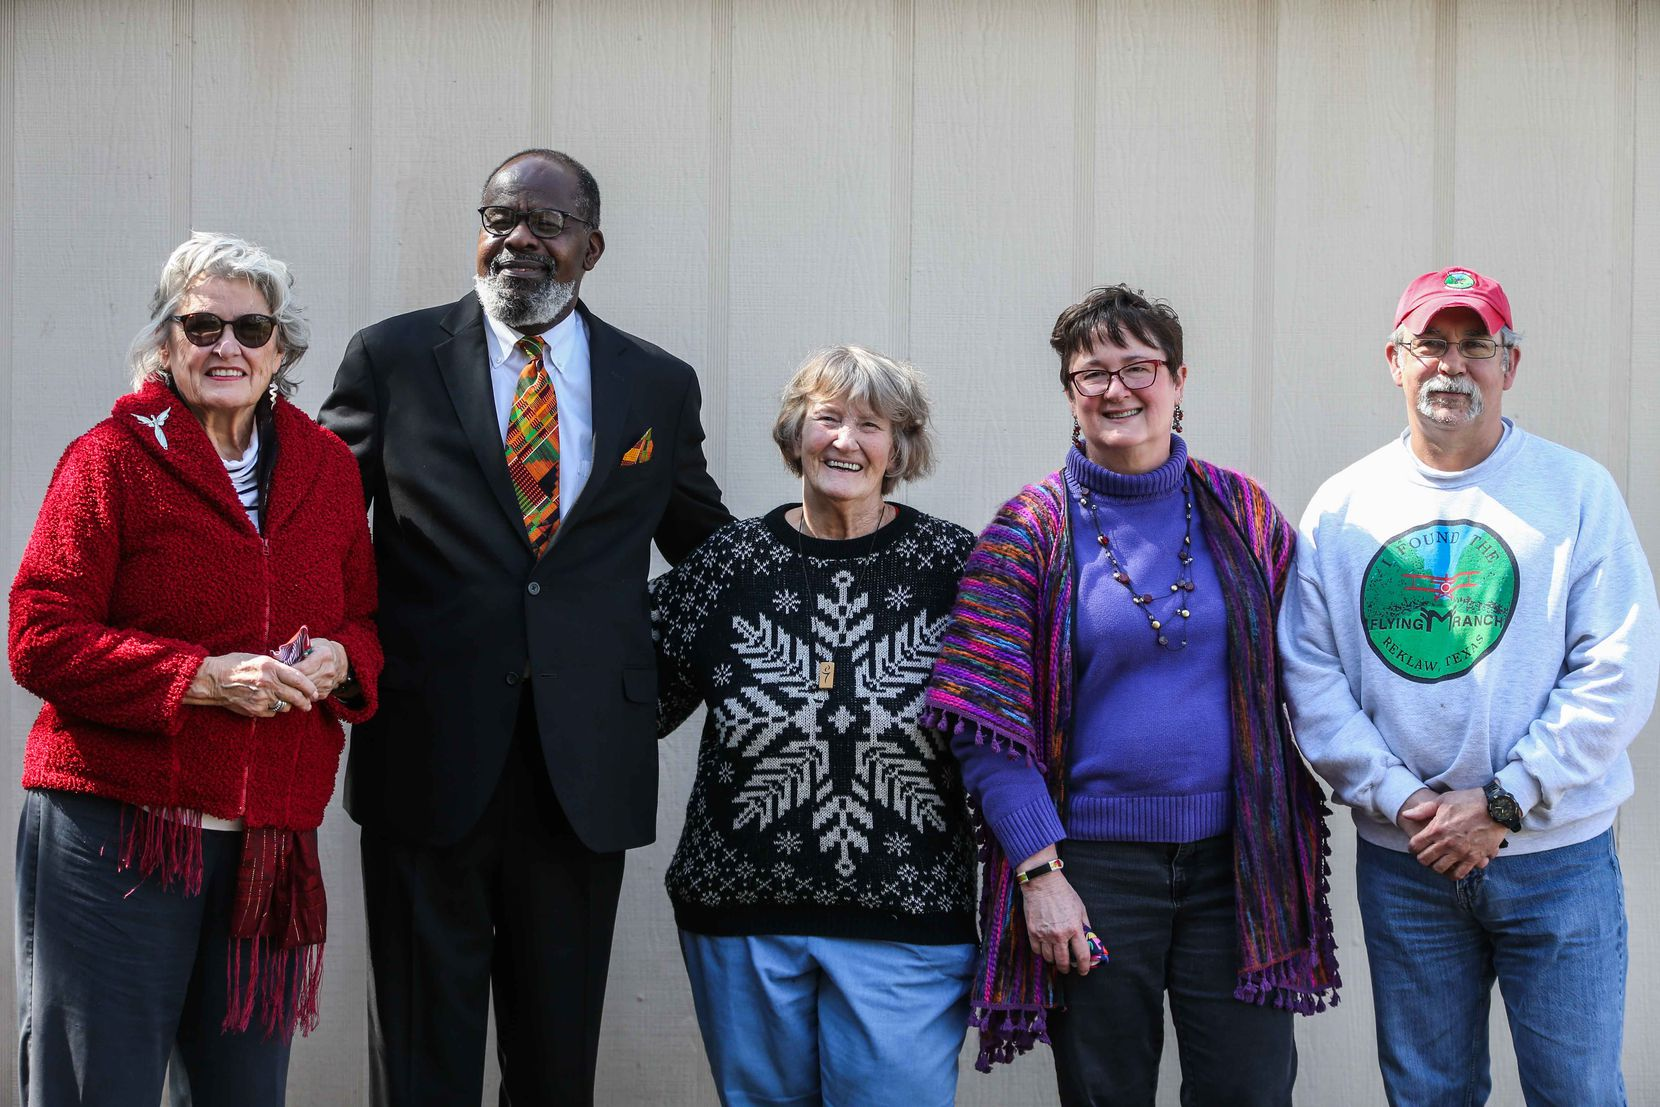 From left, Mary Sue Foster, Pastor Bobbyray Williams, Carol Uberbacher, Elizabeth Sutherland and Doug Taylor, pose together for a portrait at her home in Dallas on Sunday, February 21, 2021. Uberbacher lost power at her home after Winter storm Uri hit Dallas last Sunday, and Pastor Williams woke her up from hypothermic reaction after a Foster couldn't get in touch with her. Then Sutherland and Taylor took her home. (Lola Gomez/The Dallas Morning News)